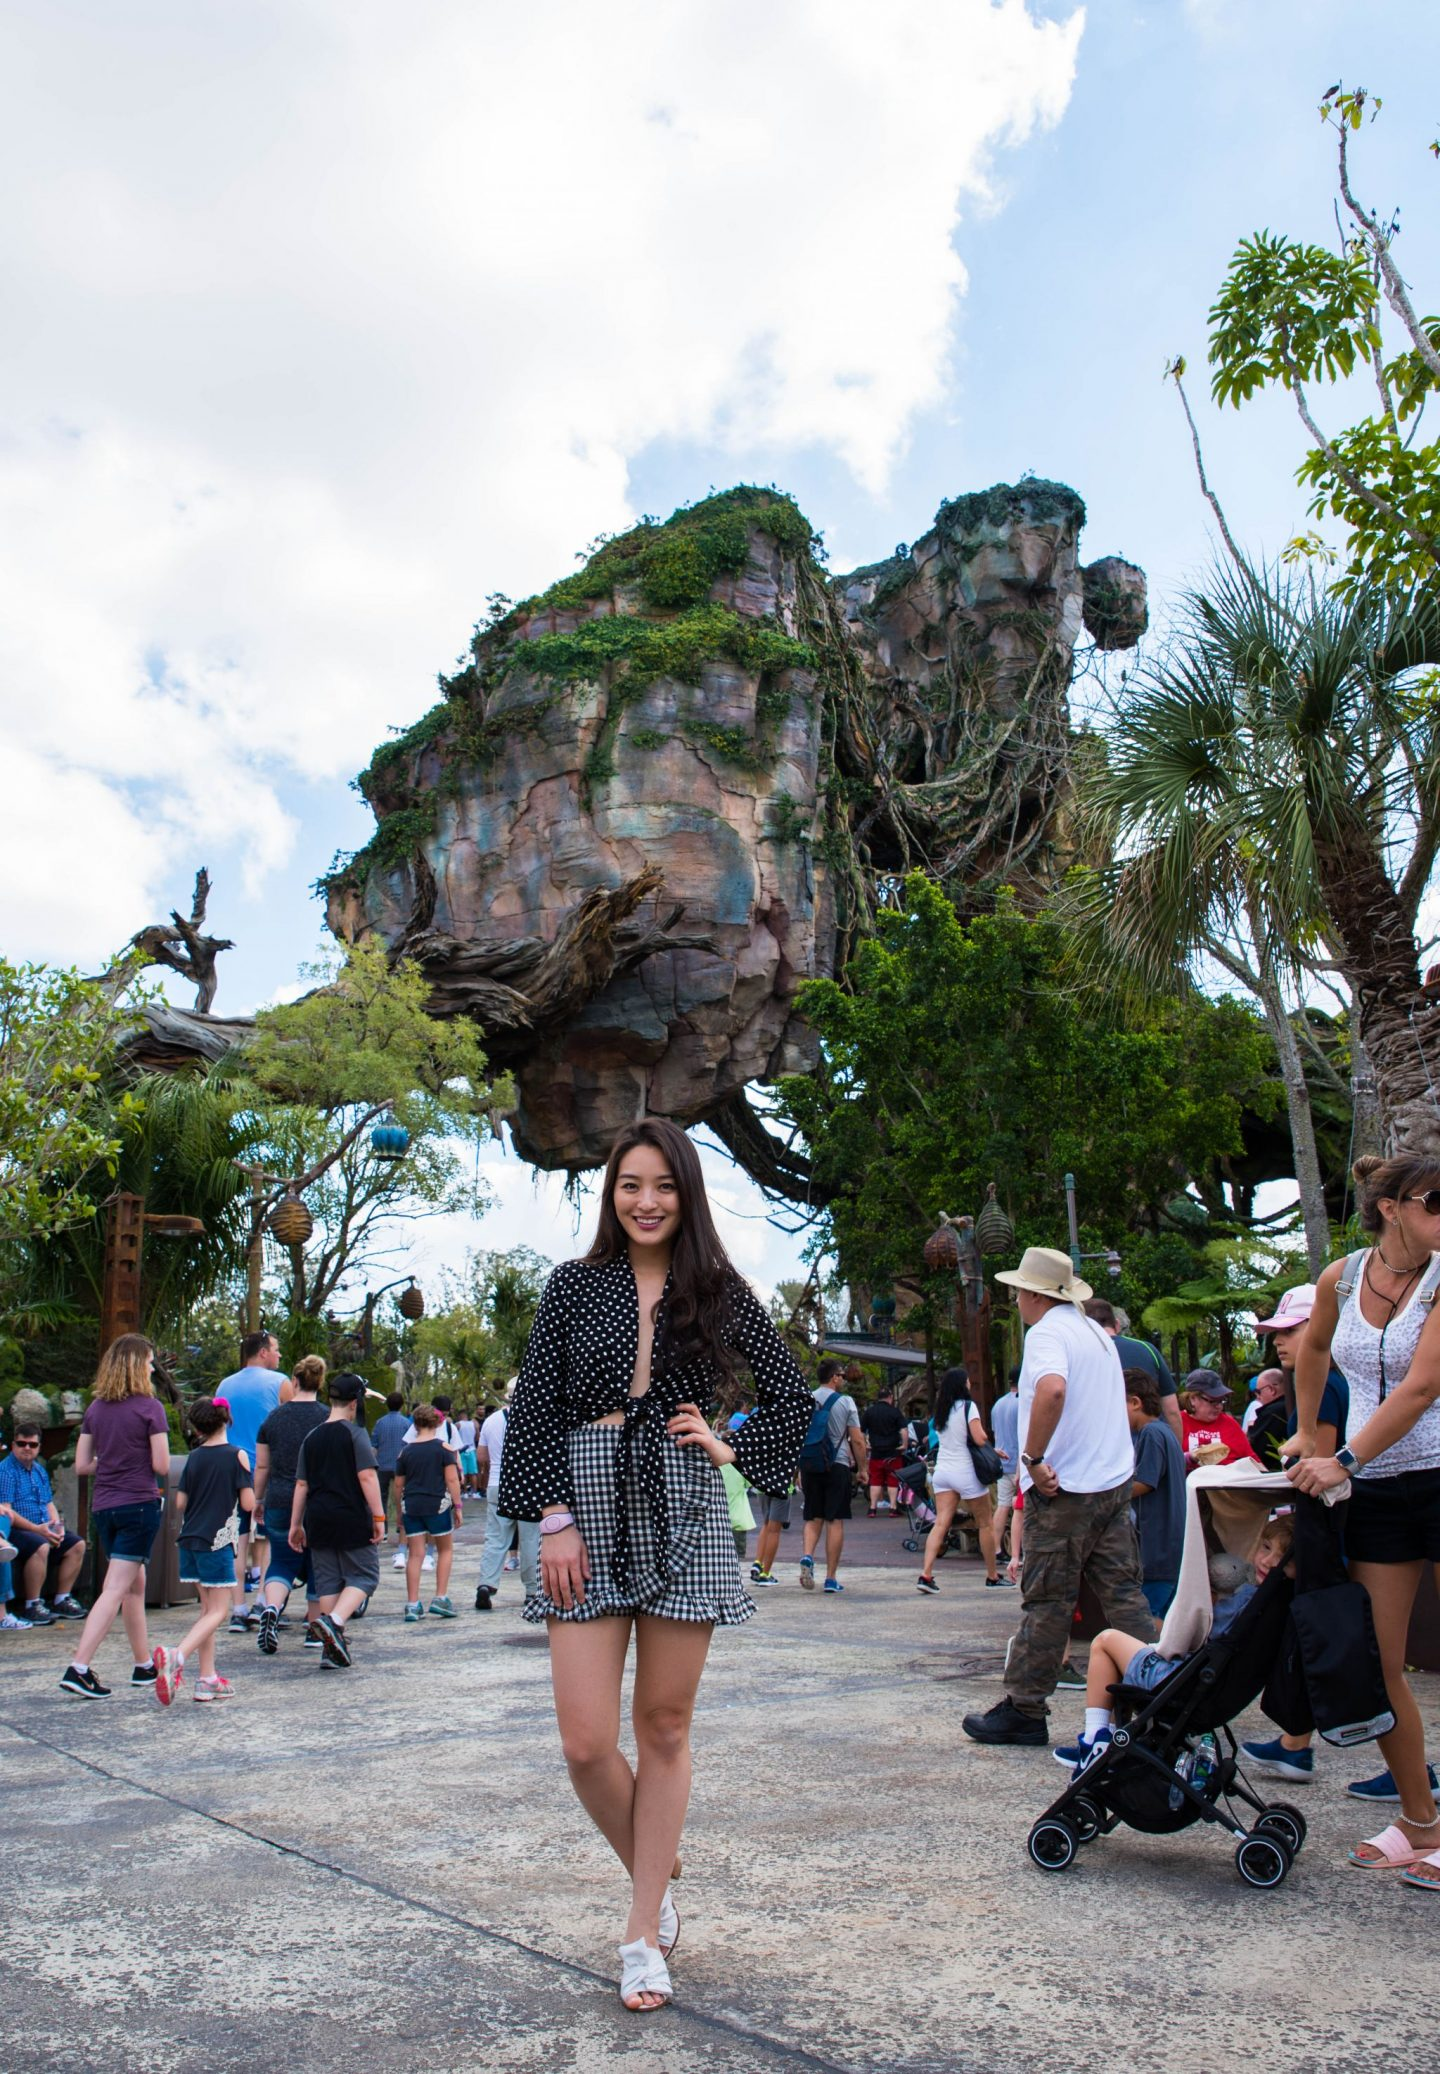 Adults at Disney:  Having the Time of my Life in Orlando